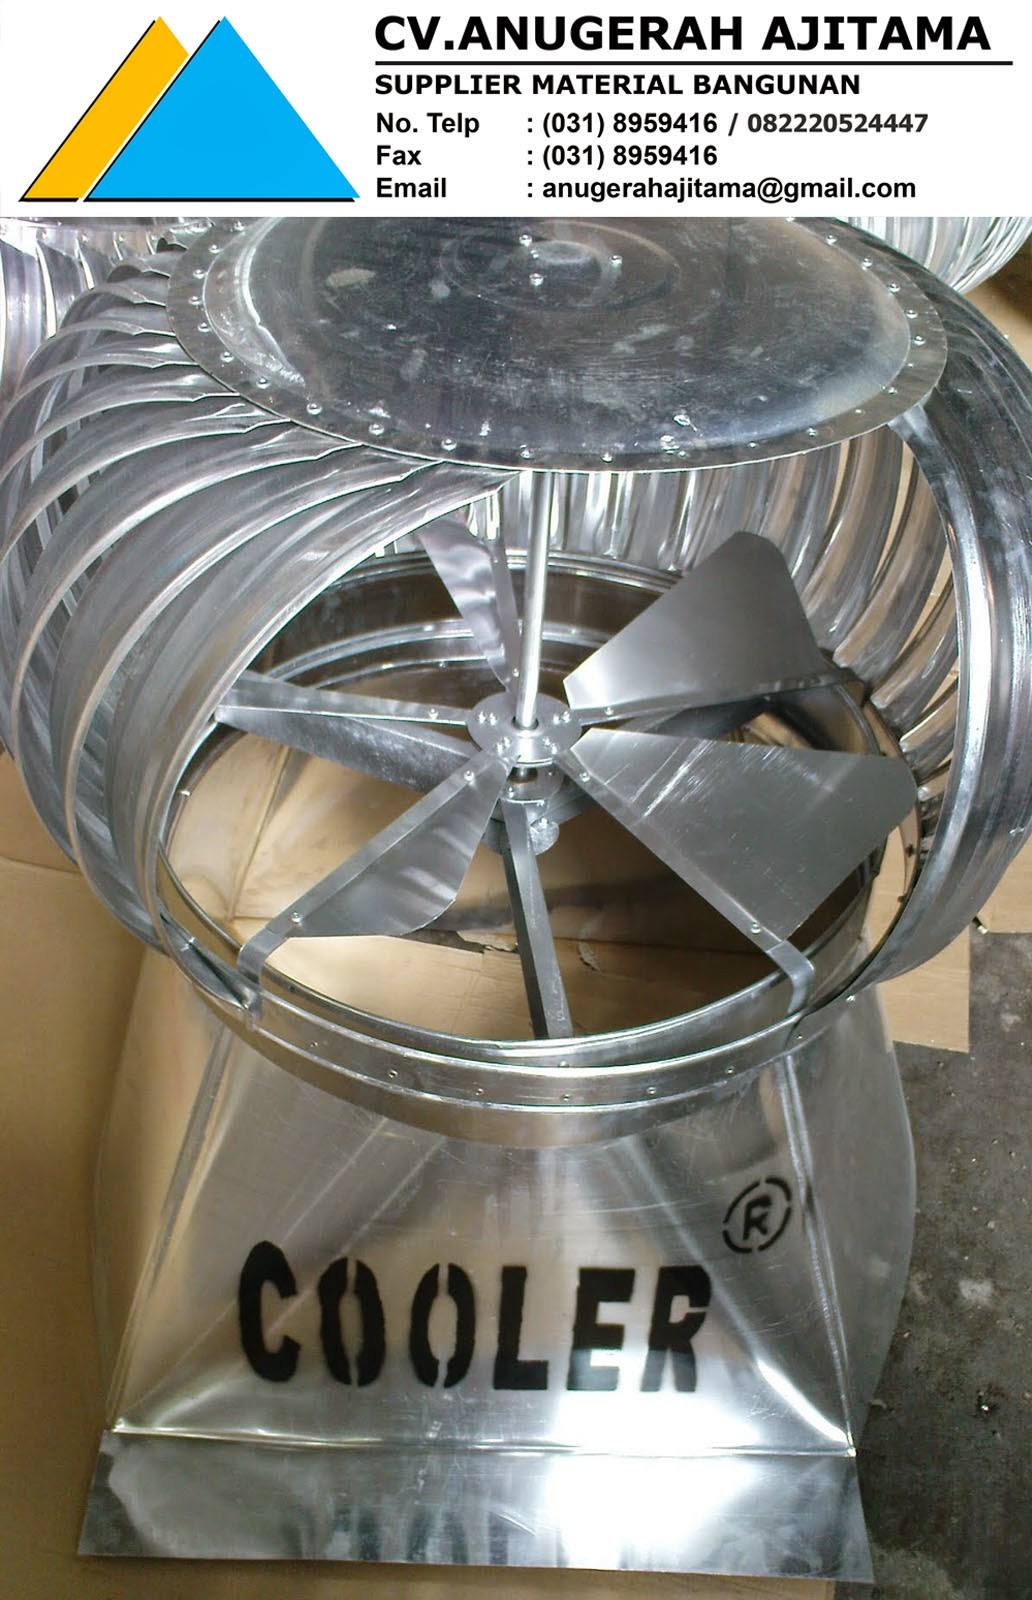 TURBINE VENTILATOR COOLER